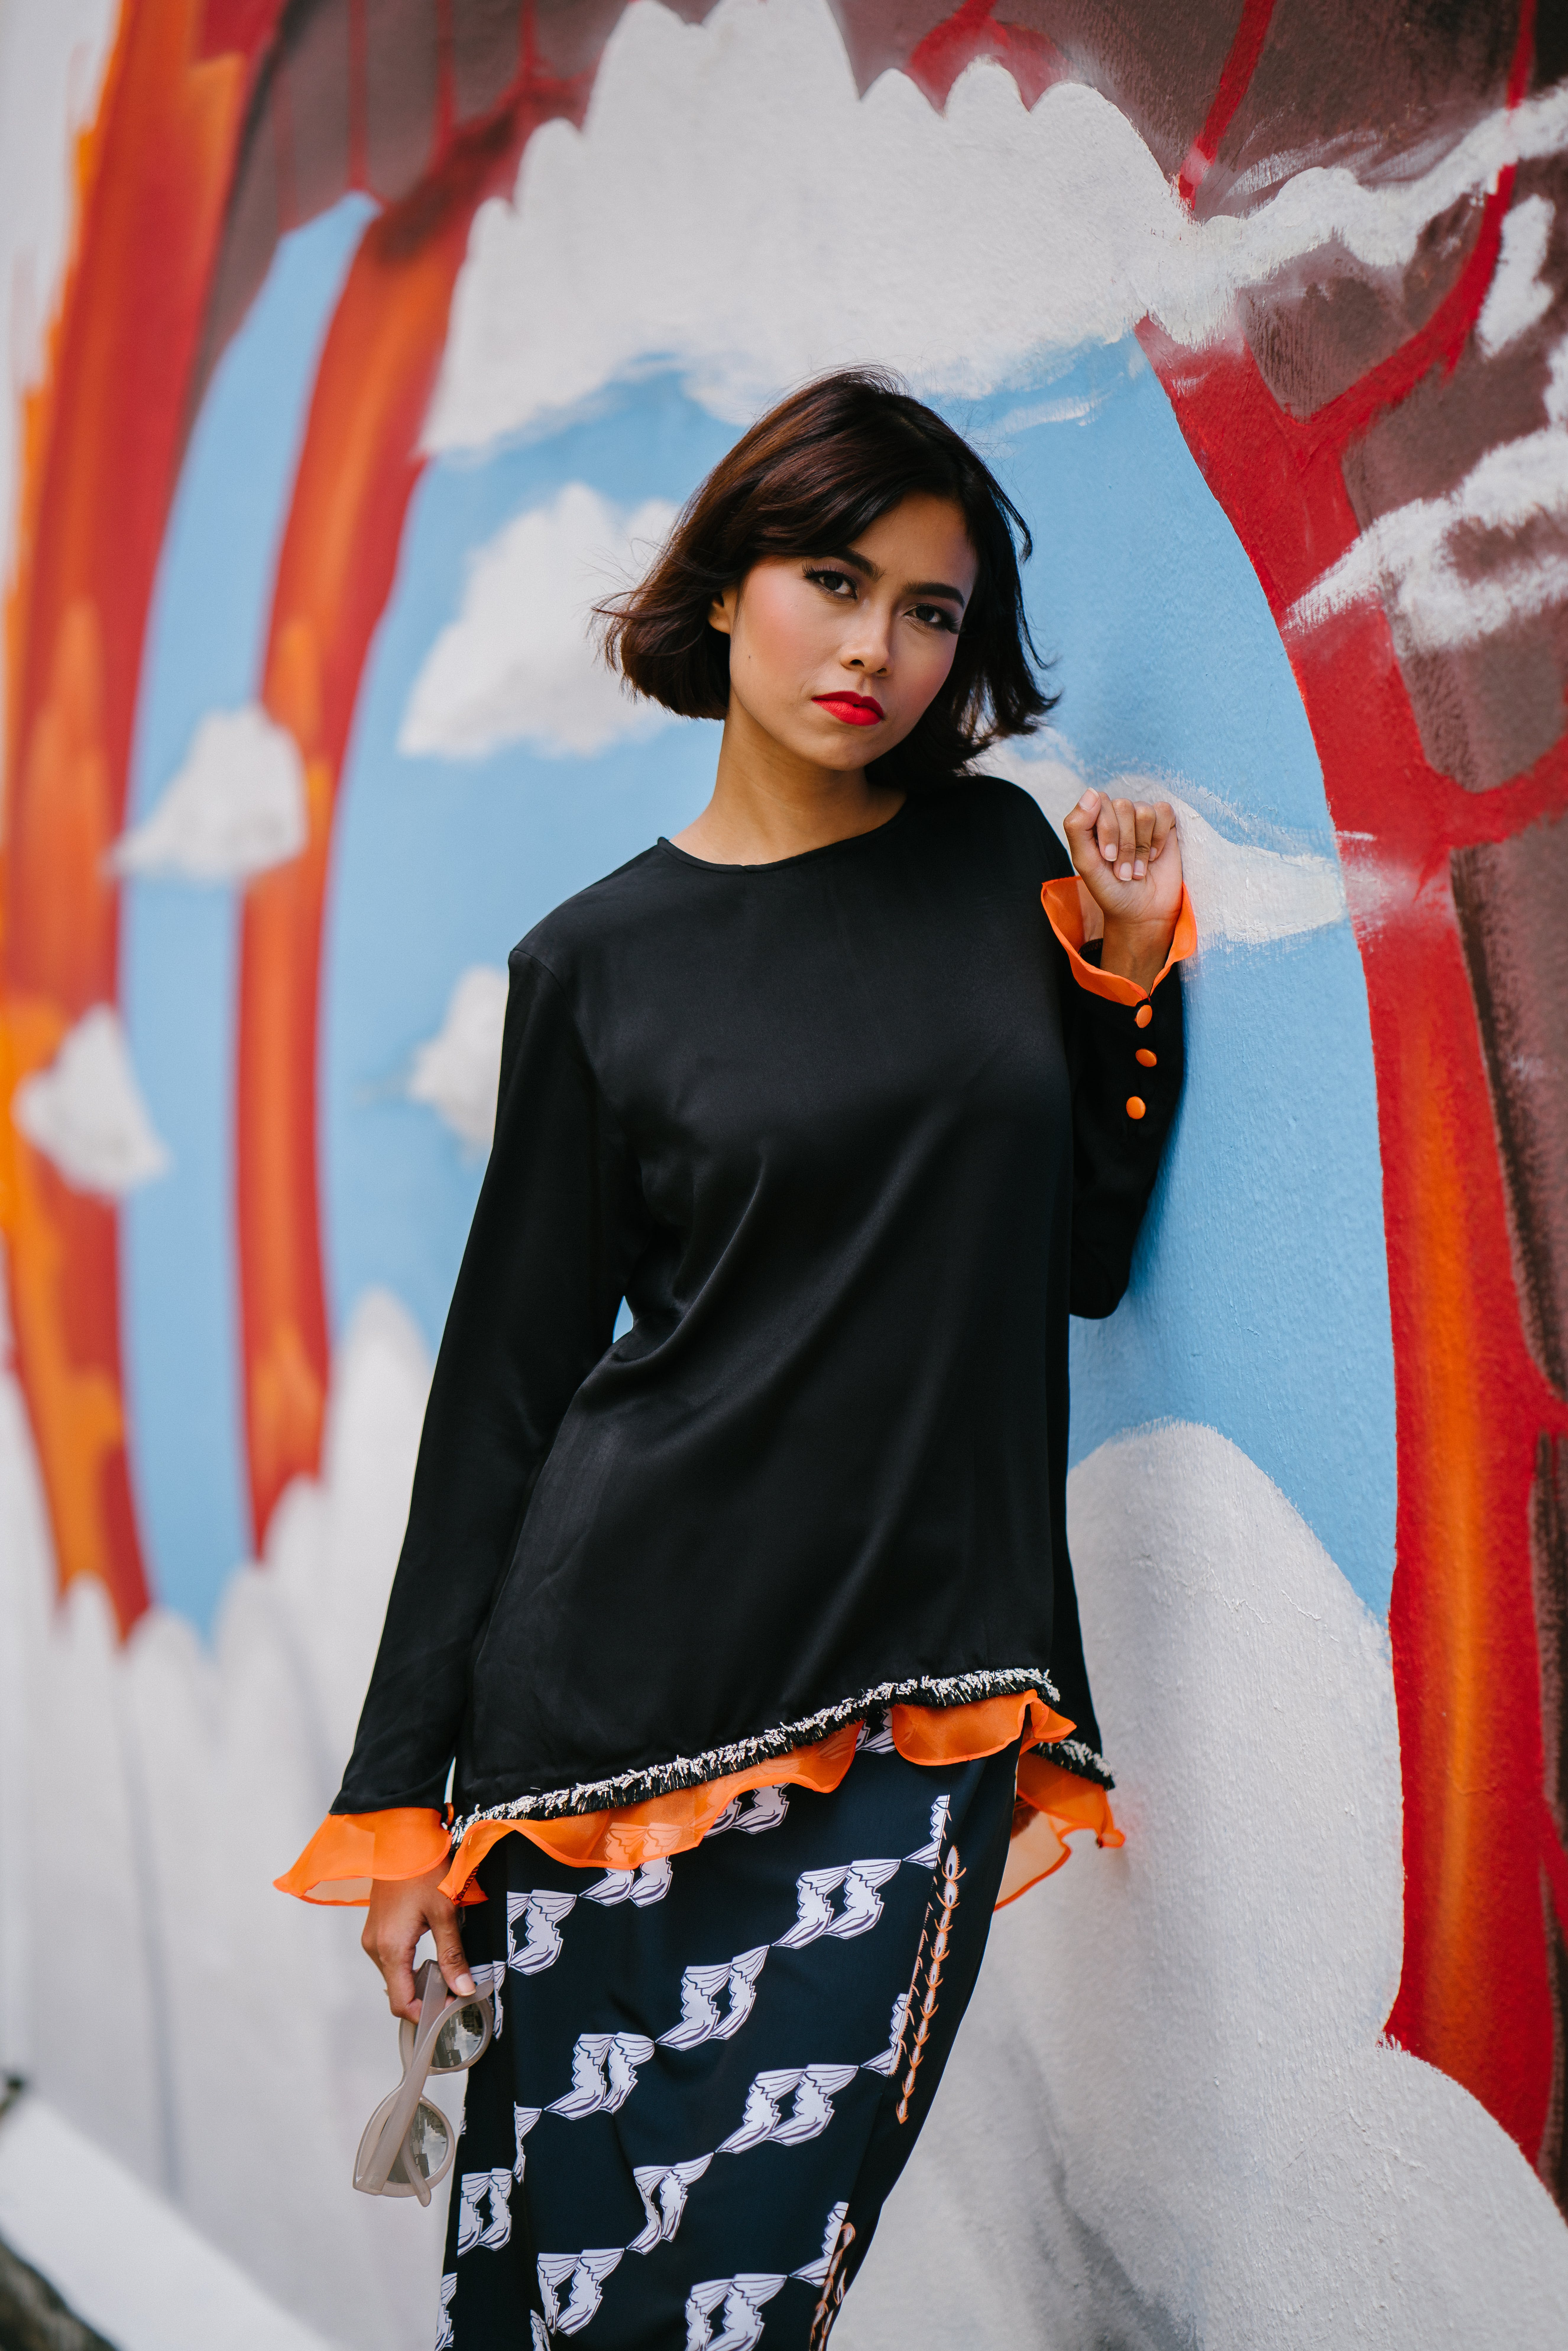 Woman Wearing Black Long-sleeved Shirt Learning on Wall